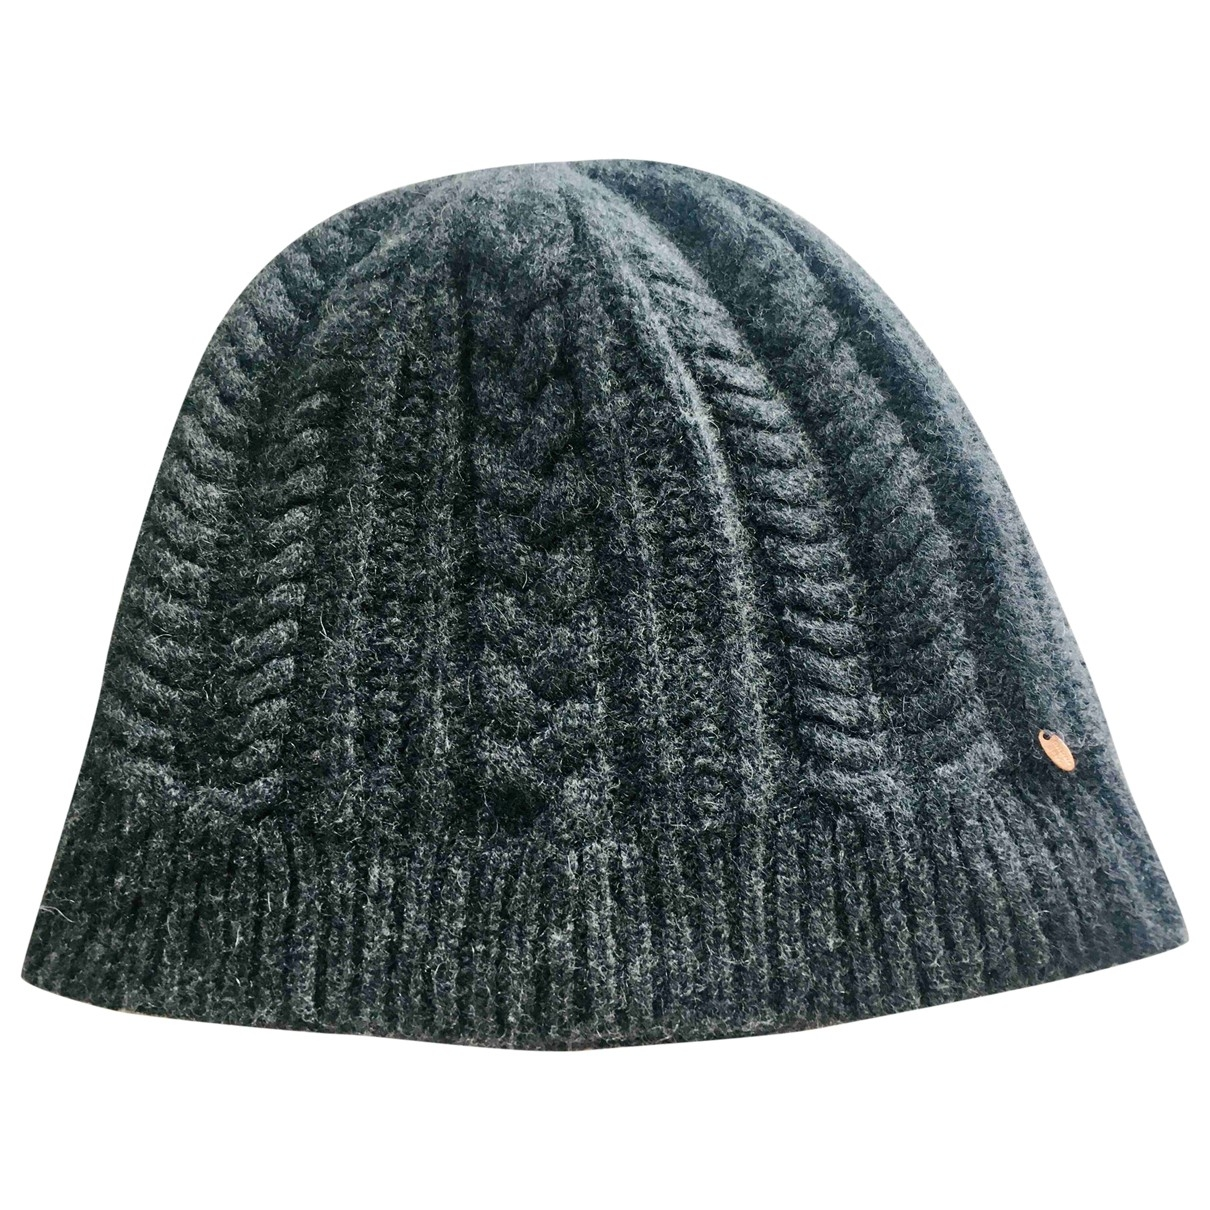 Delicatelove \N Anthracite Cashmere hat for Women 54 cm